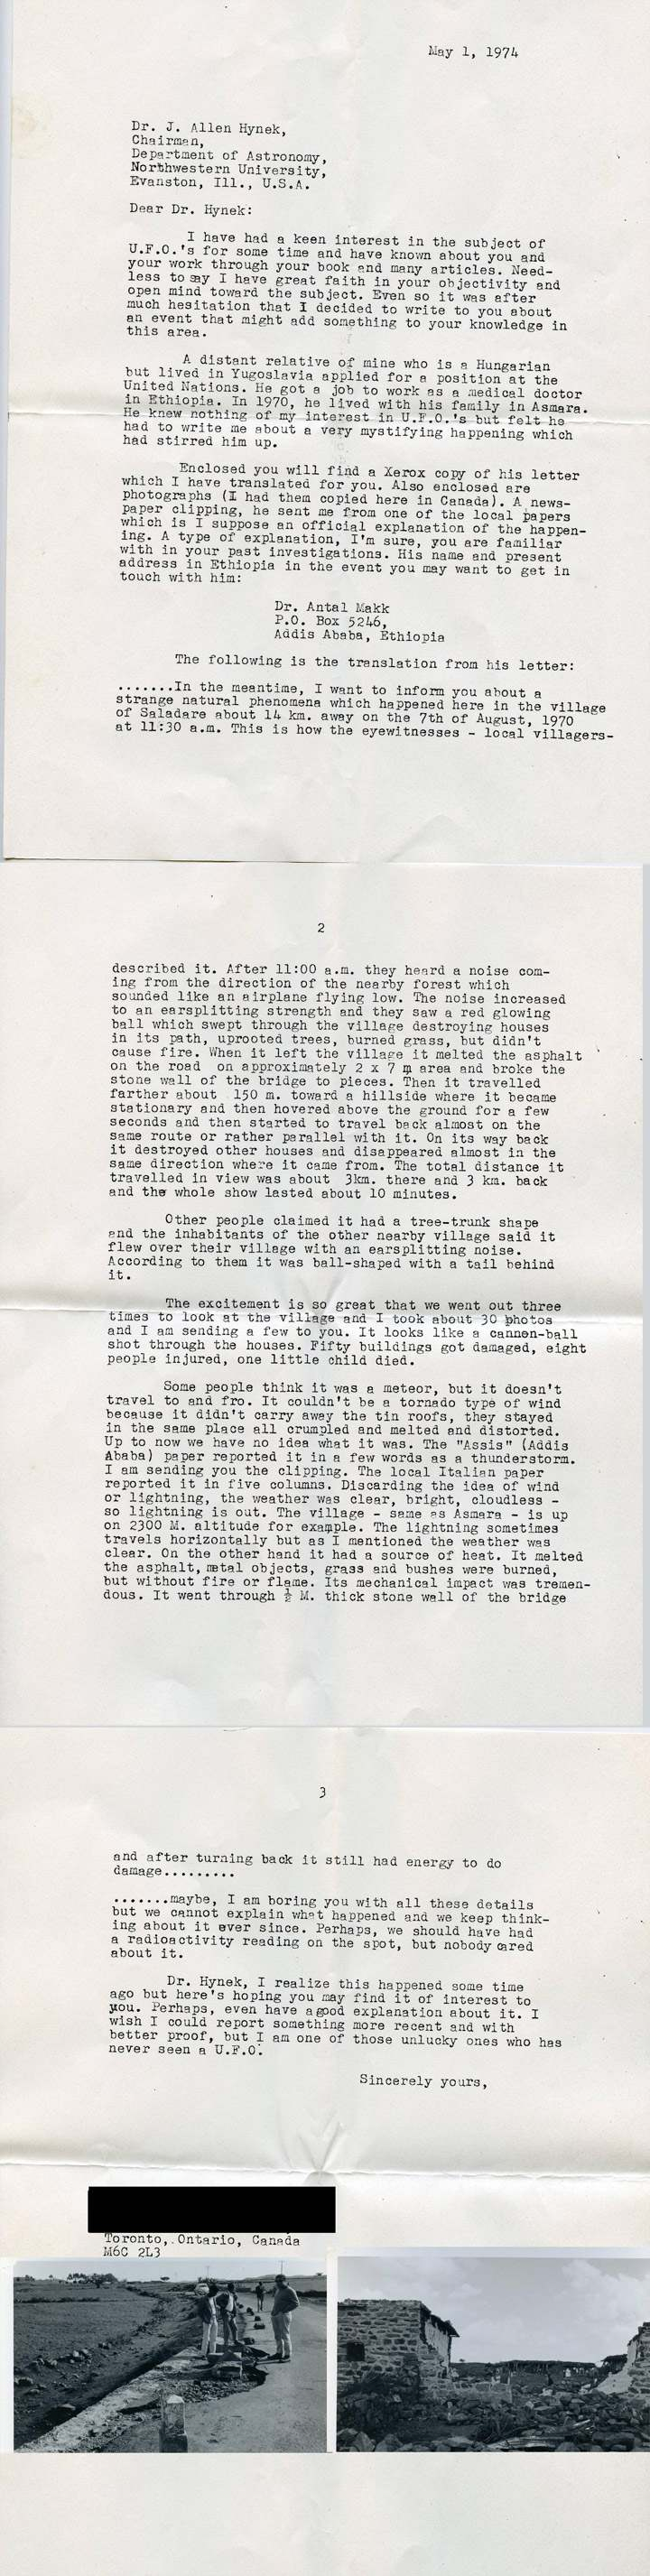 The letter sent to Hynek in 1970.